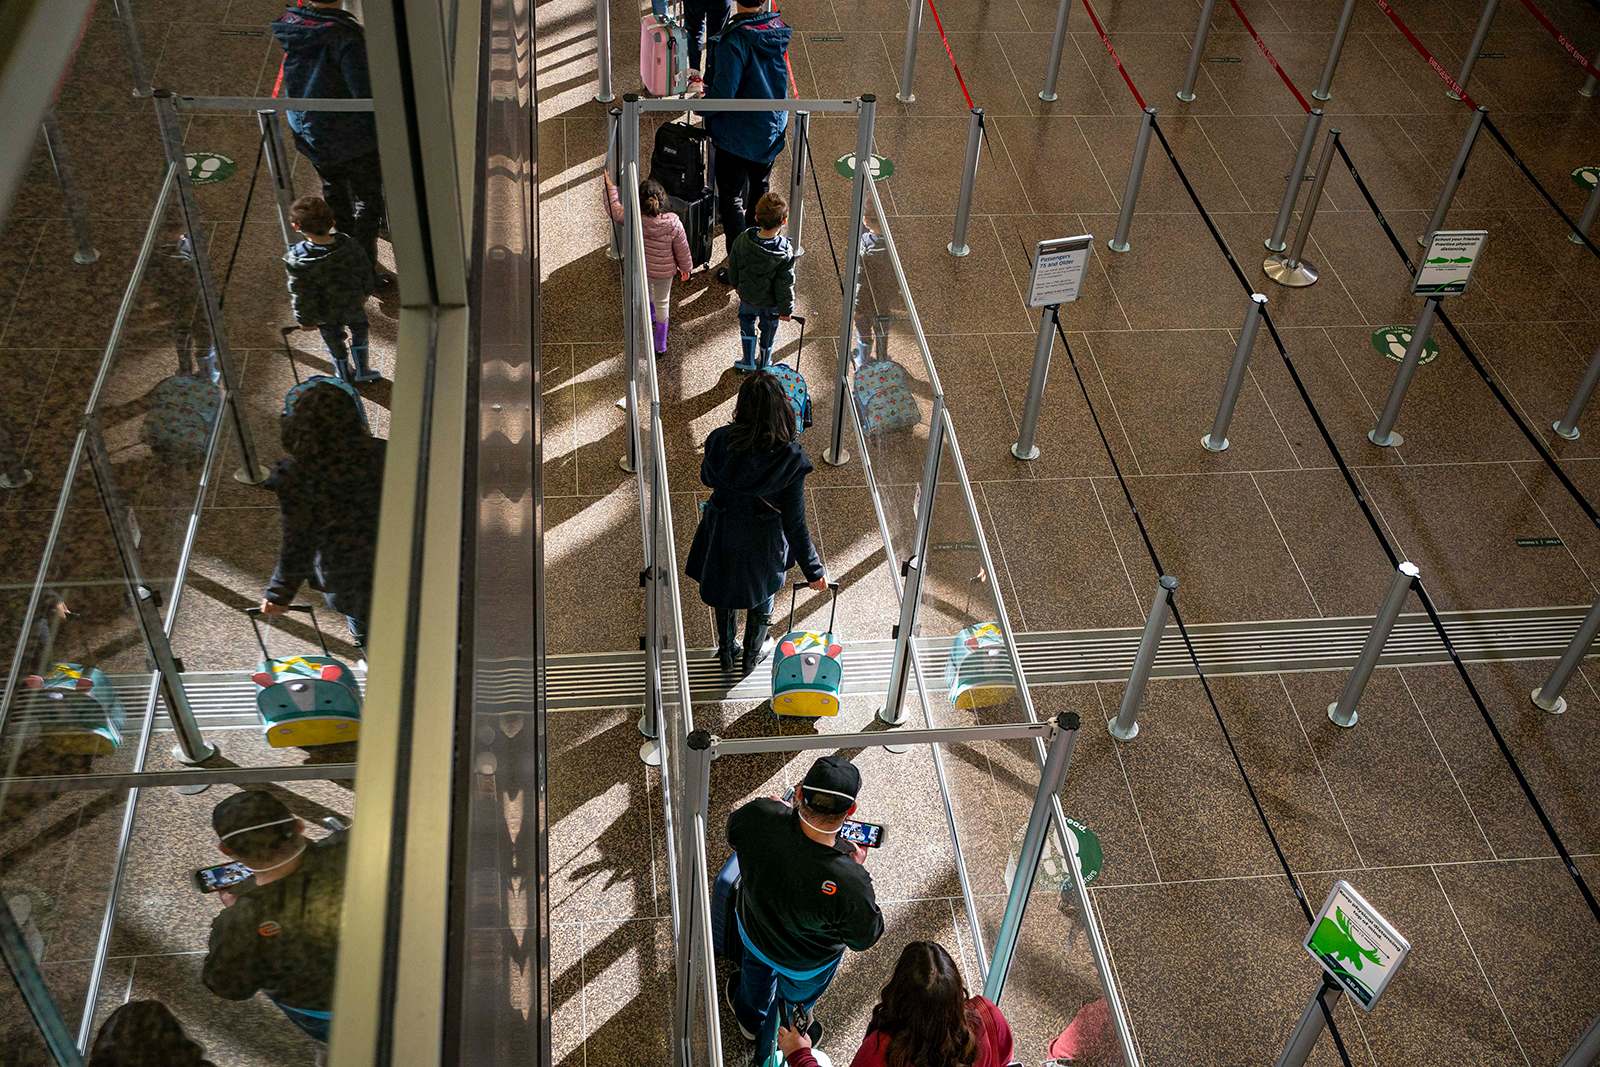 Travelers wait in line for security screening at Seattle-Tacoma International Airport in Seattle, on November 29.